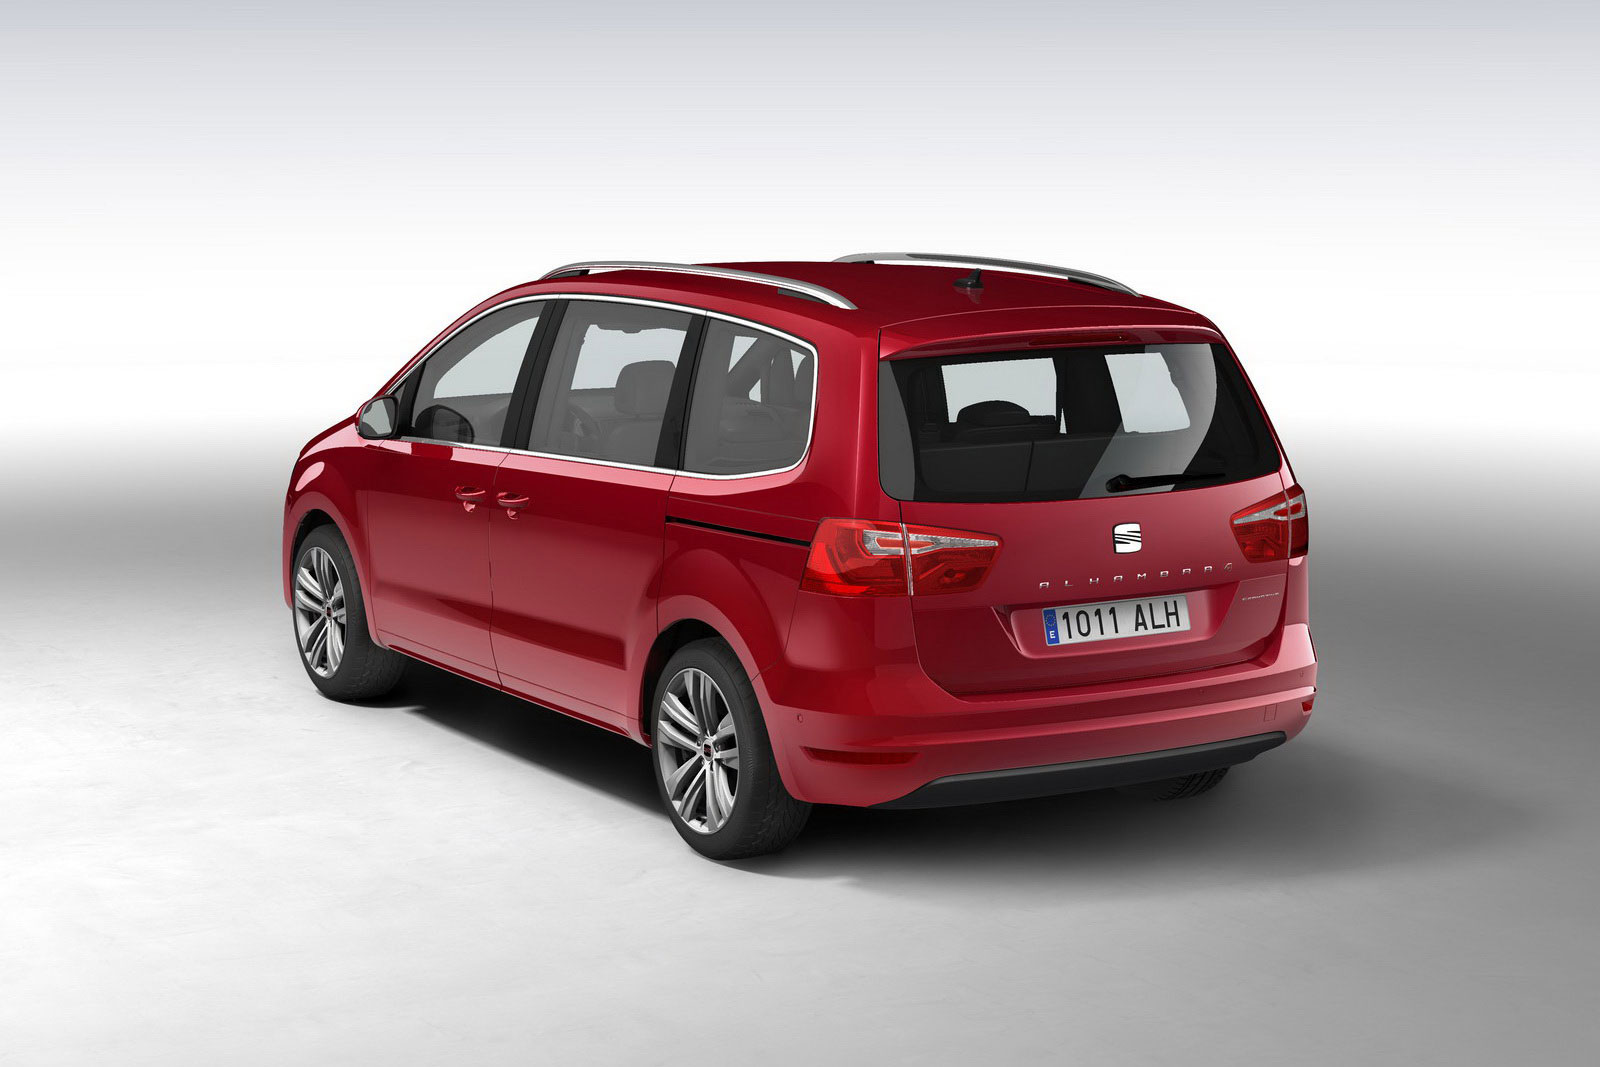 SEAT Alhambra Minivan equipped with 4WD Option   machinespider.com